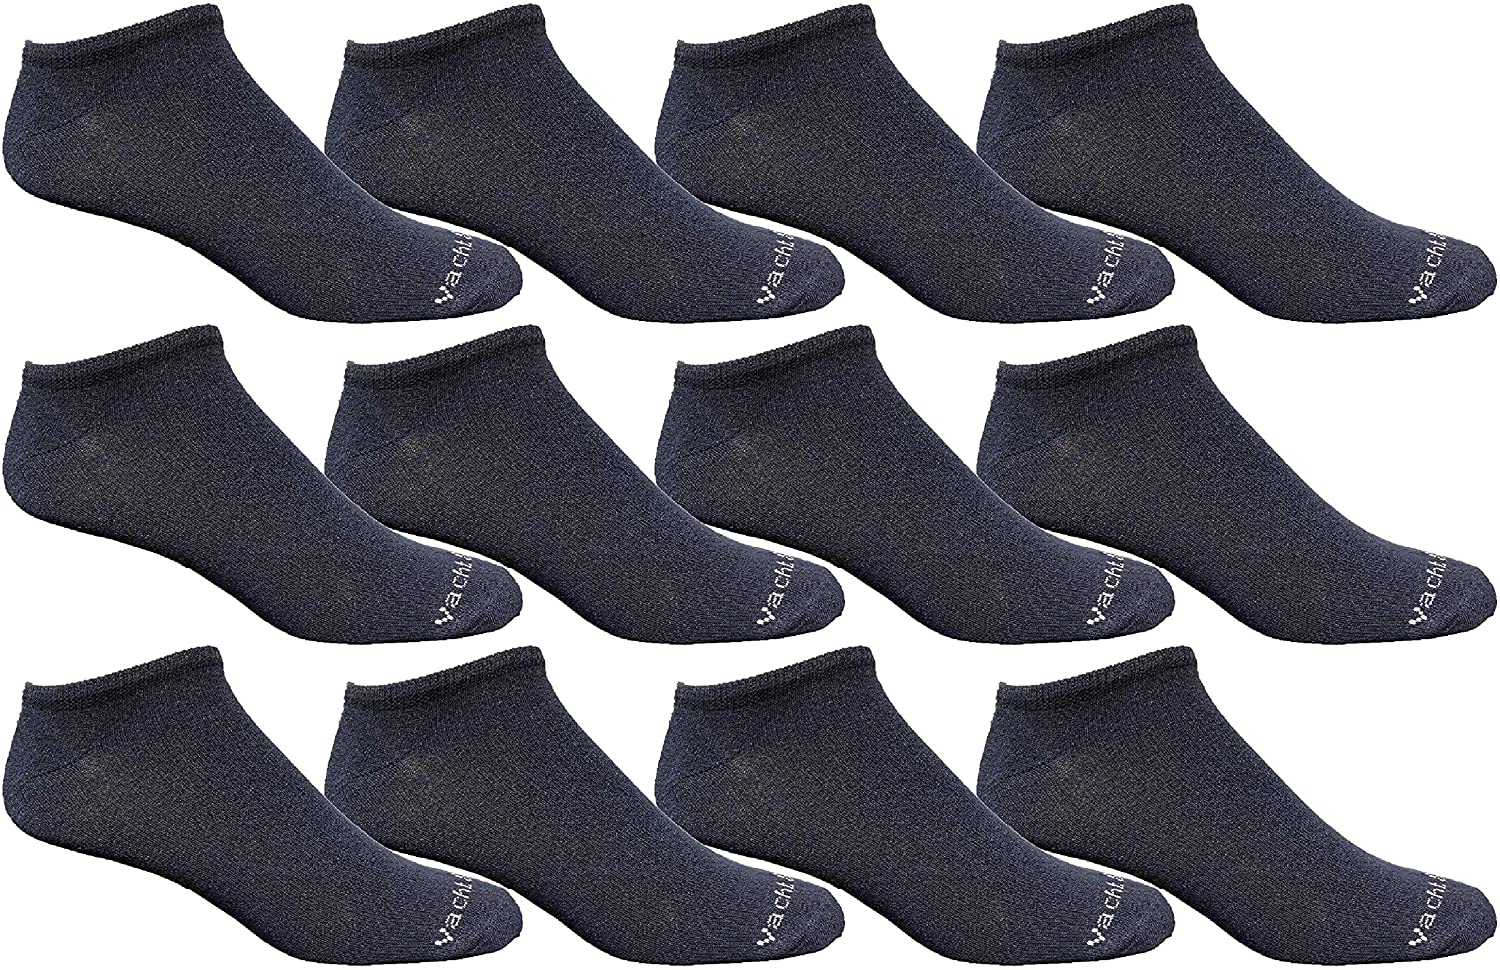 Yacht & Smith Wholesale Mens 97% Cotton Shoe Liner Training Socks Size 10-13, No Show Thin Low Cut Sport Ankle Socks